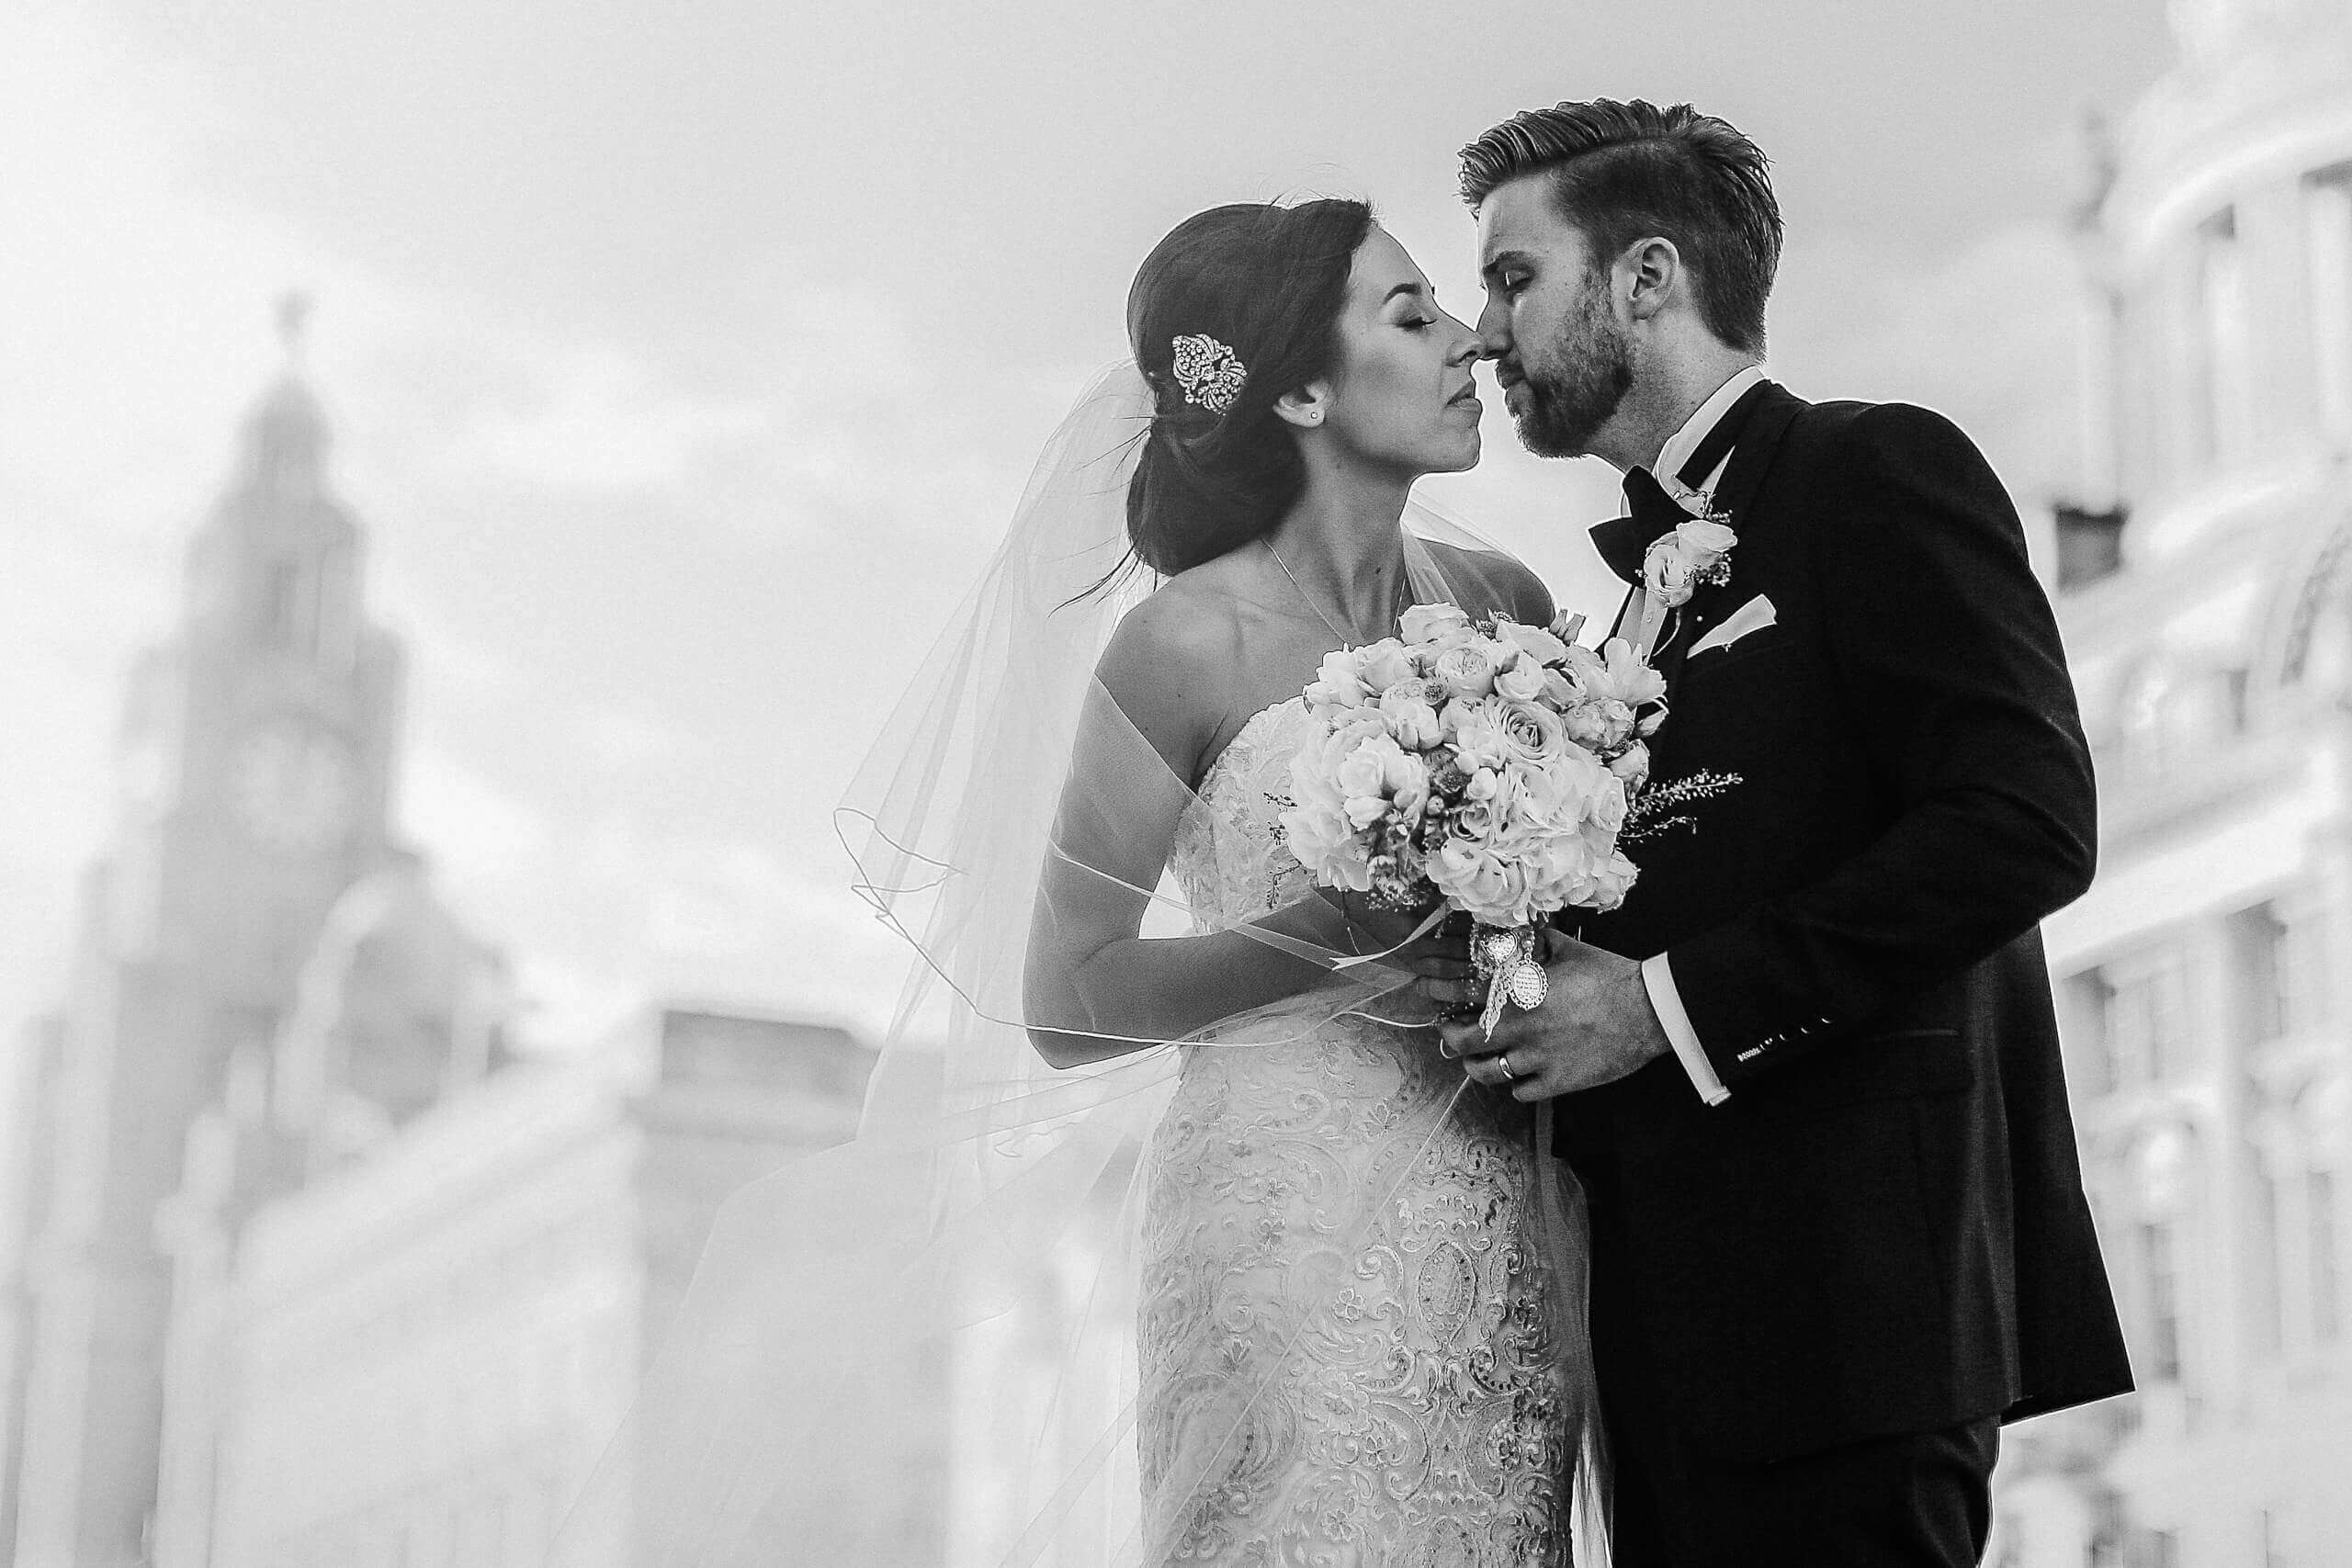 Ormskirk wedding photography. Black and white photo of bride and groom kissing